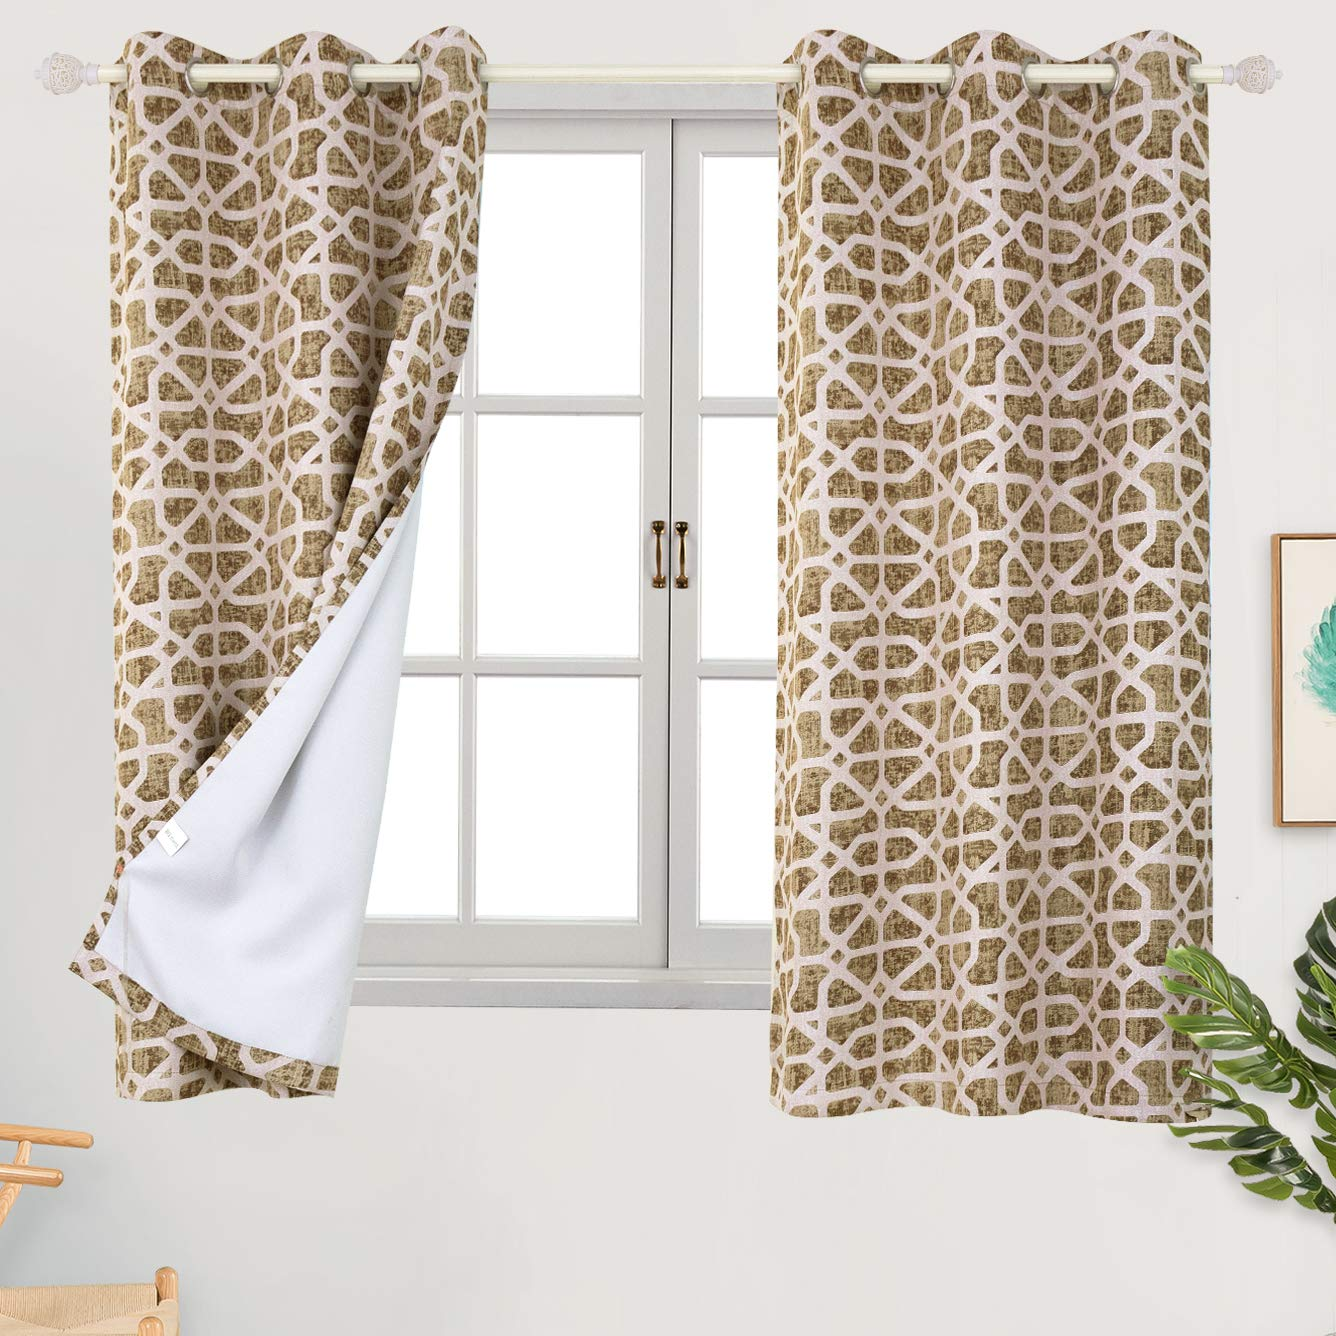 38 x 45 Inch, Green BGment Moroccan Printed Blackout Curtains for Bedroom Set of 2 Panels Grommet Thermal Insulated Room Darkening Lattice Floral Curtains for Living Room